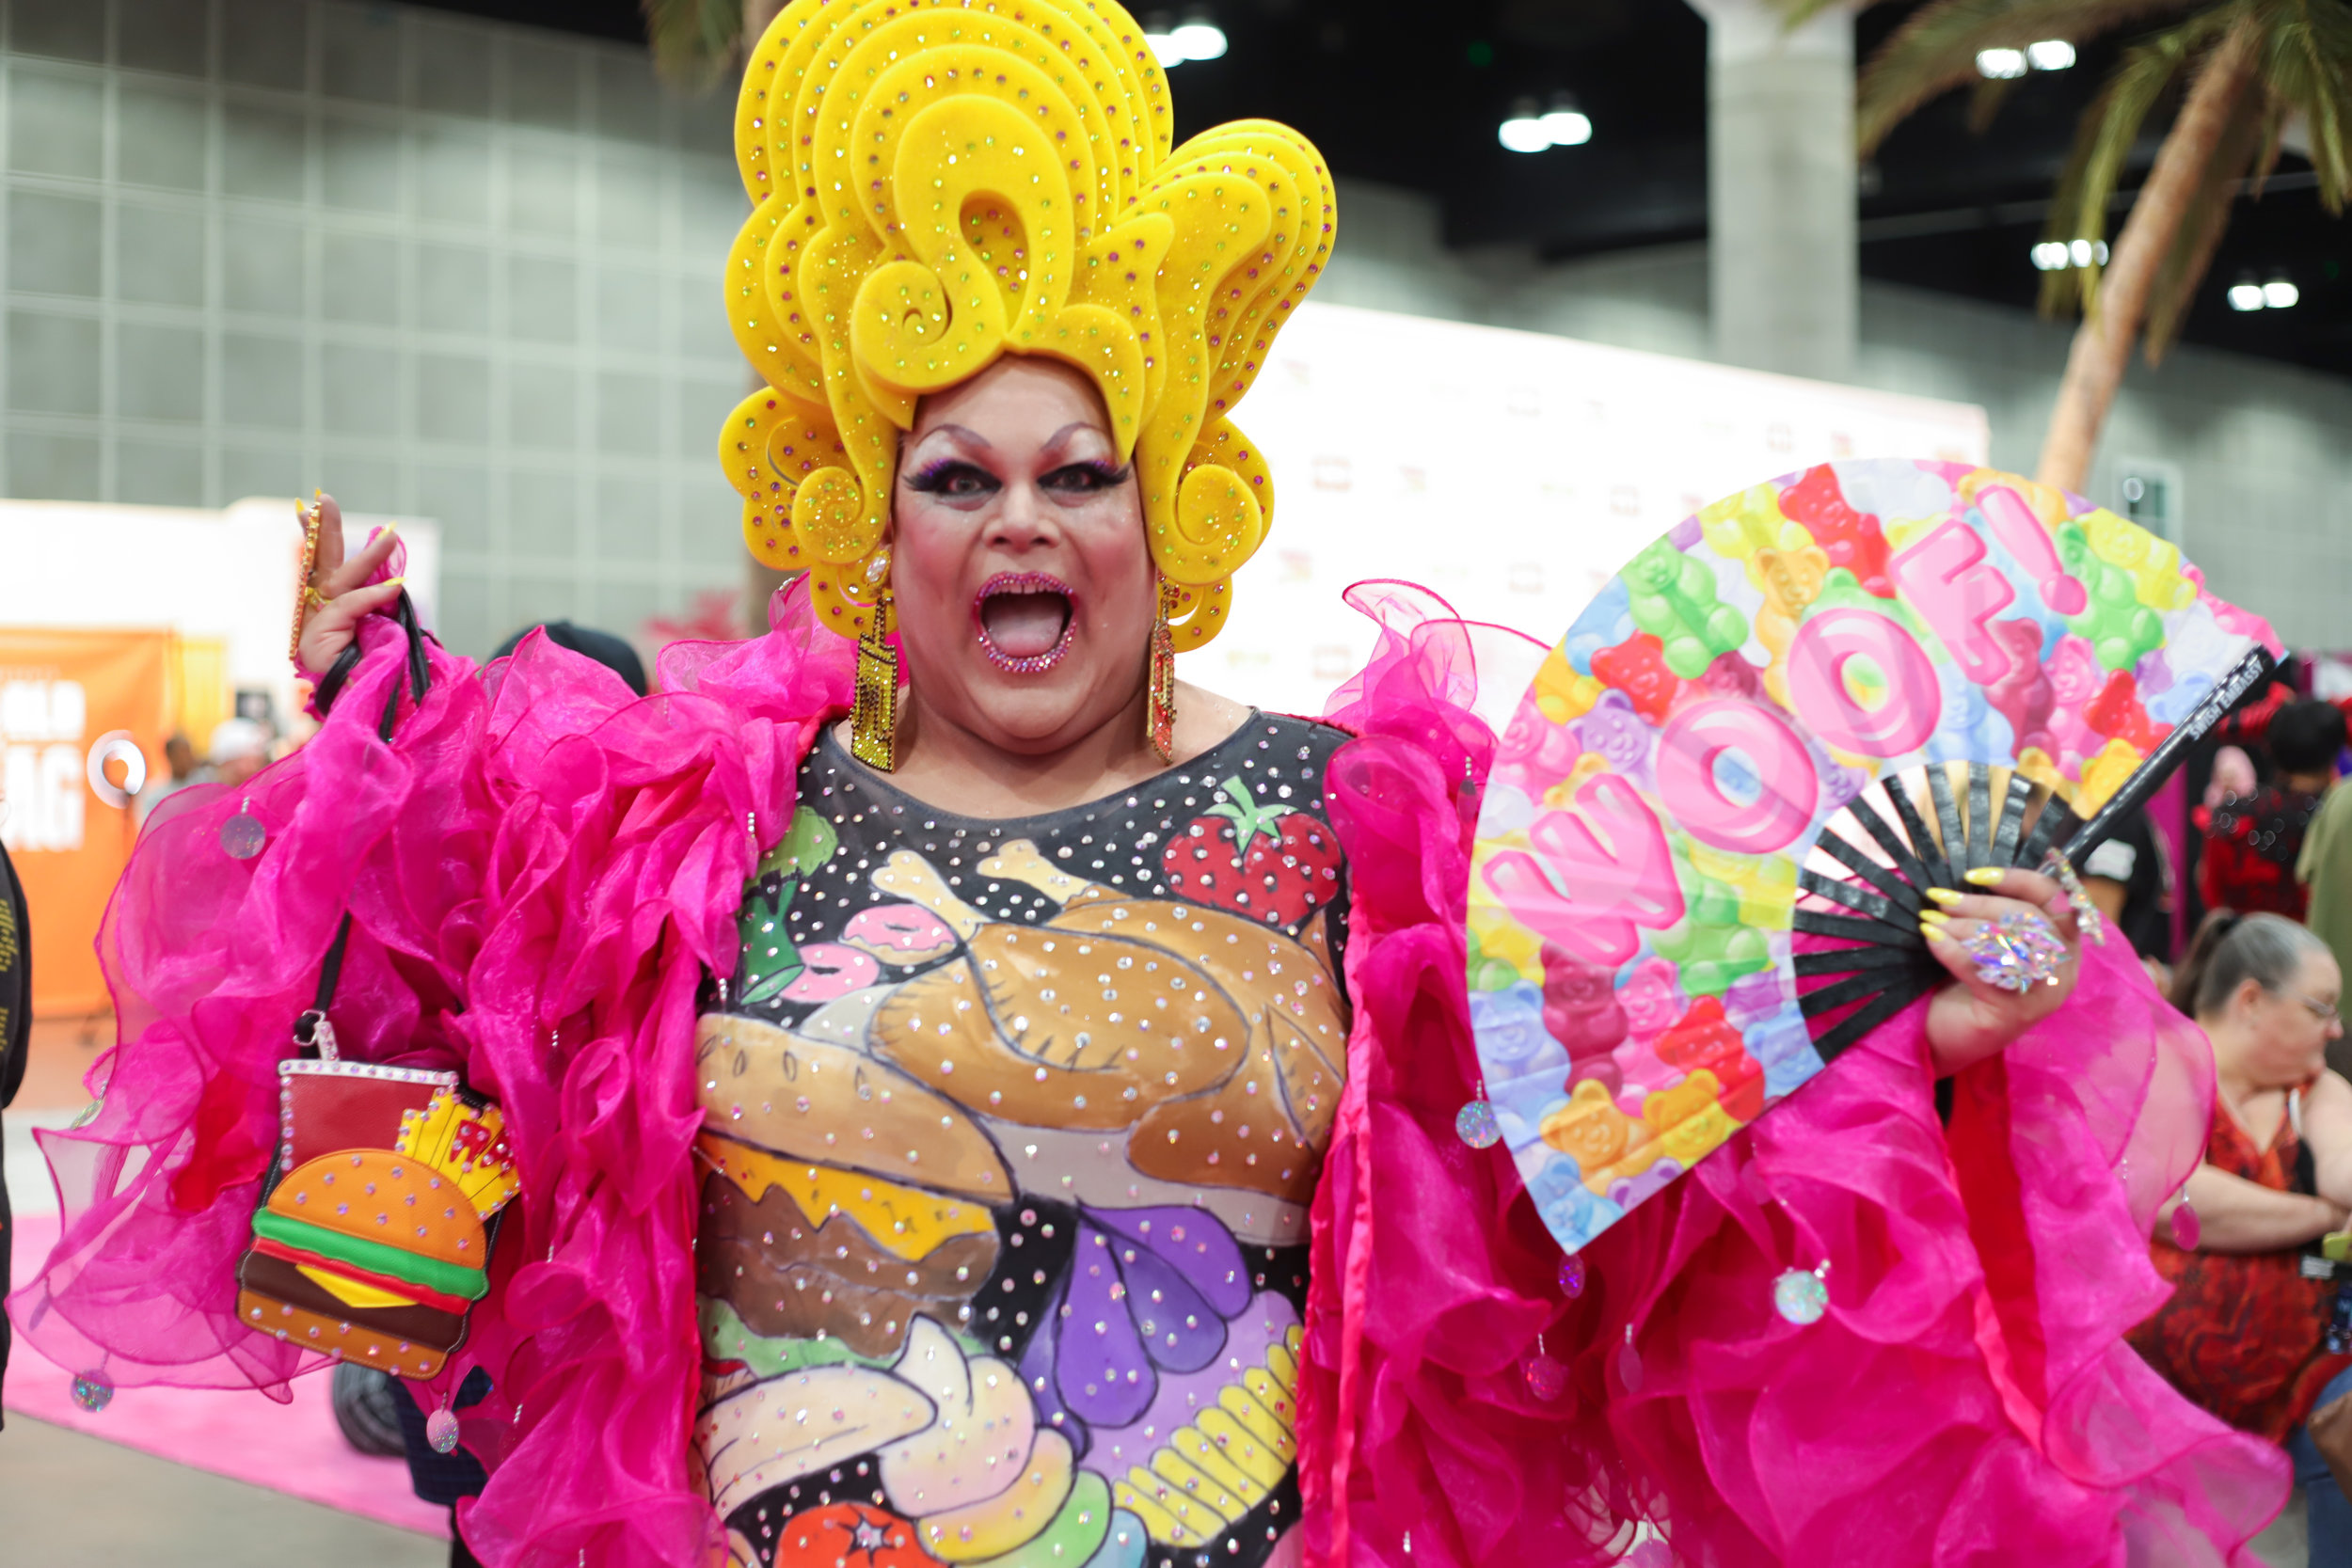 Plus Size Style Stars of Dragcon -  Fabuplus (Guest Blogger)